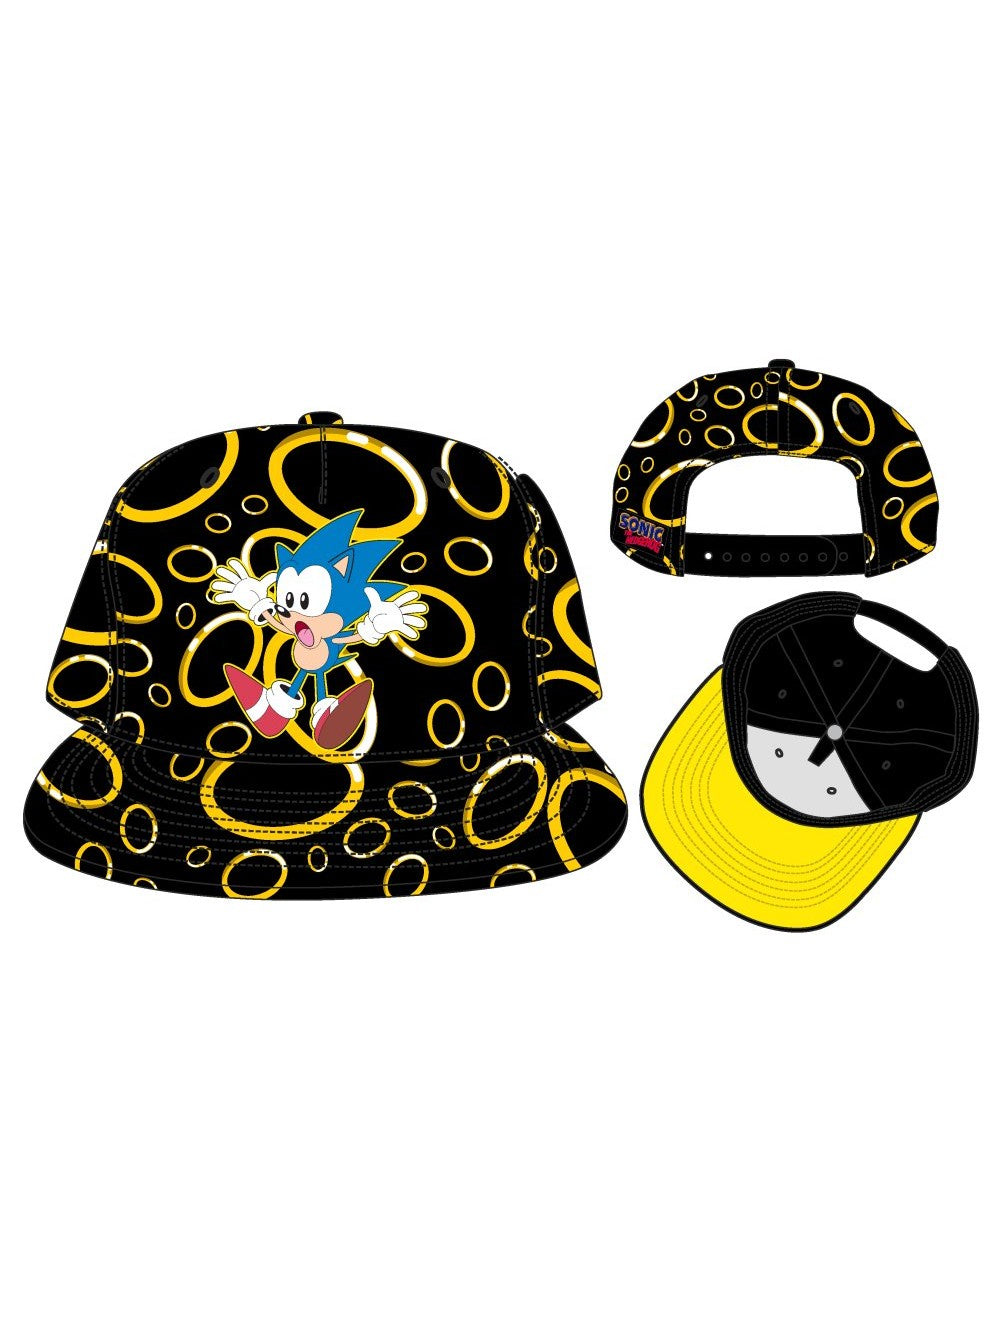 SEGA - Rings 3D Embroid S/B Cap Black